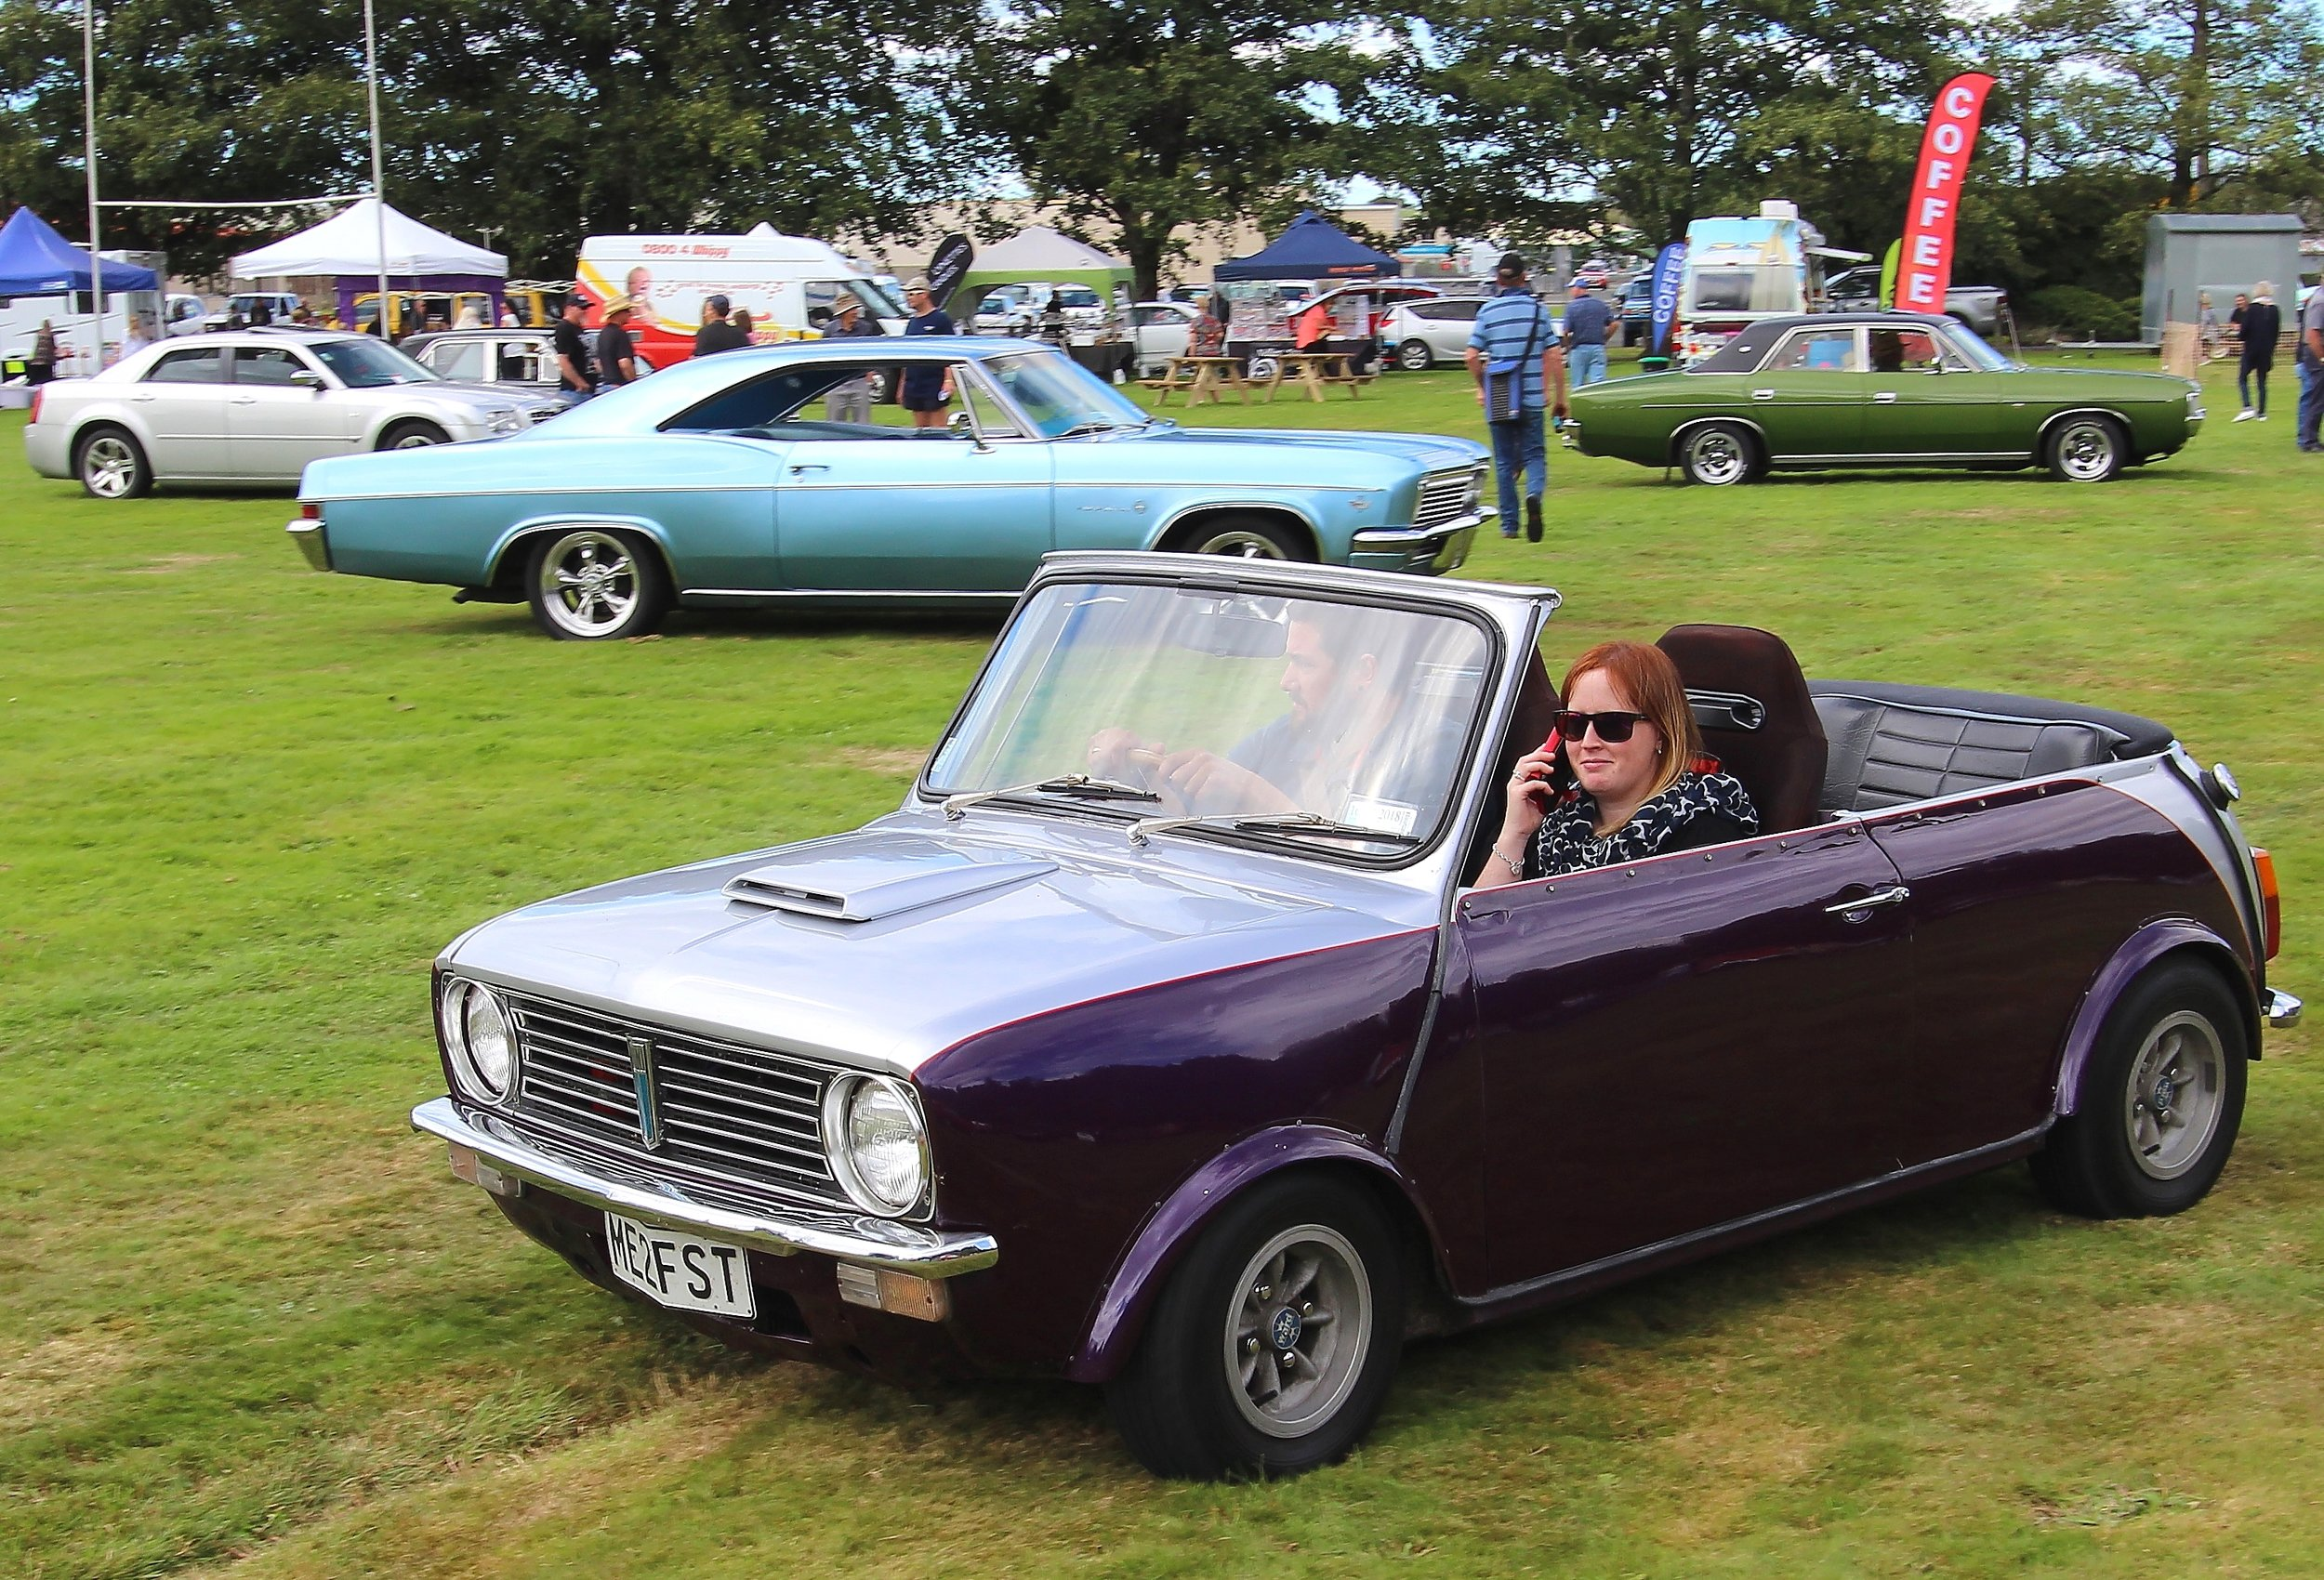 Cute mini convertible